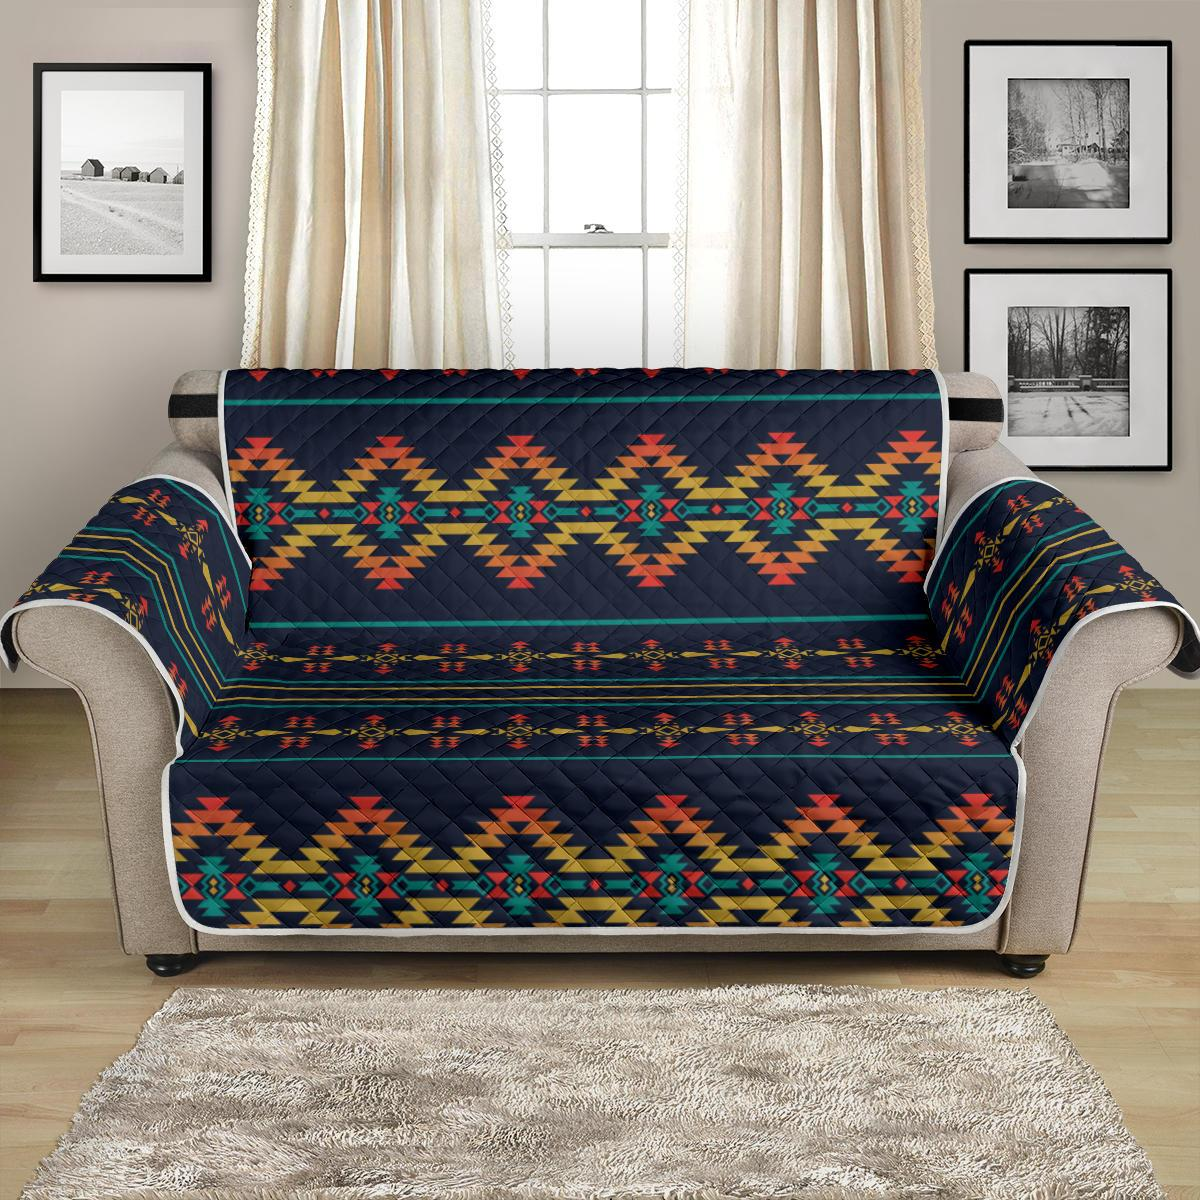 Southwest American Design Themed Print Loveseat Couch Cover Protector